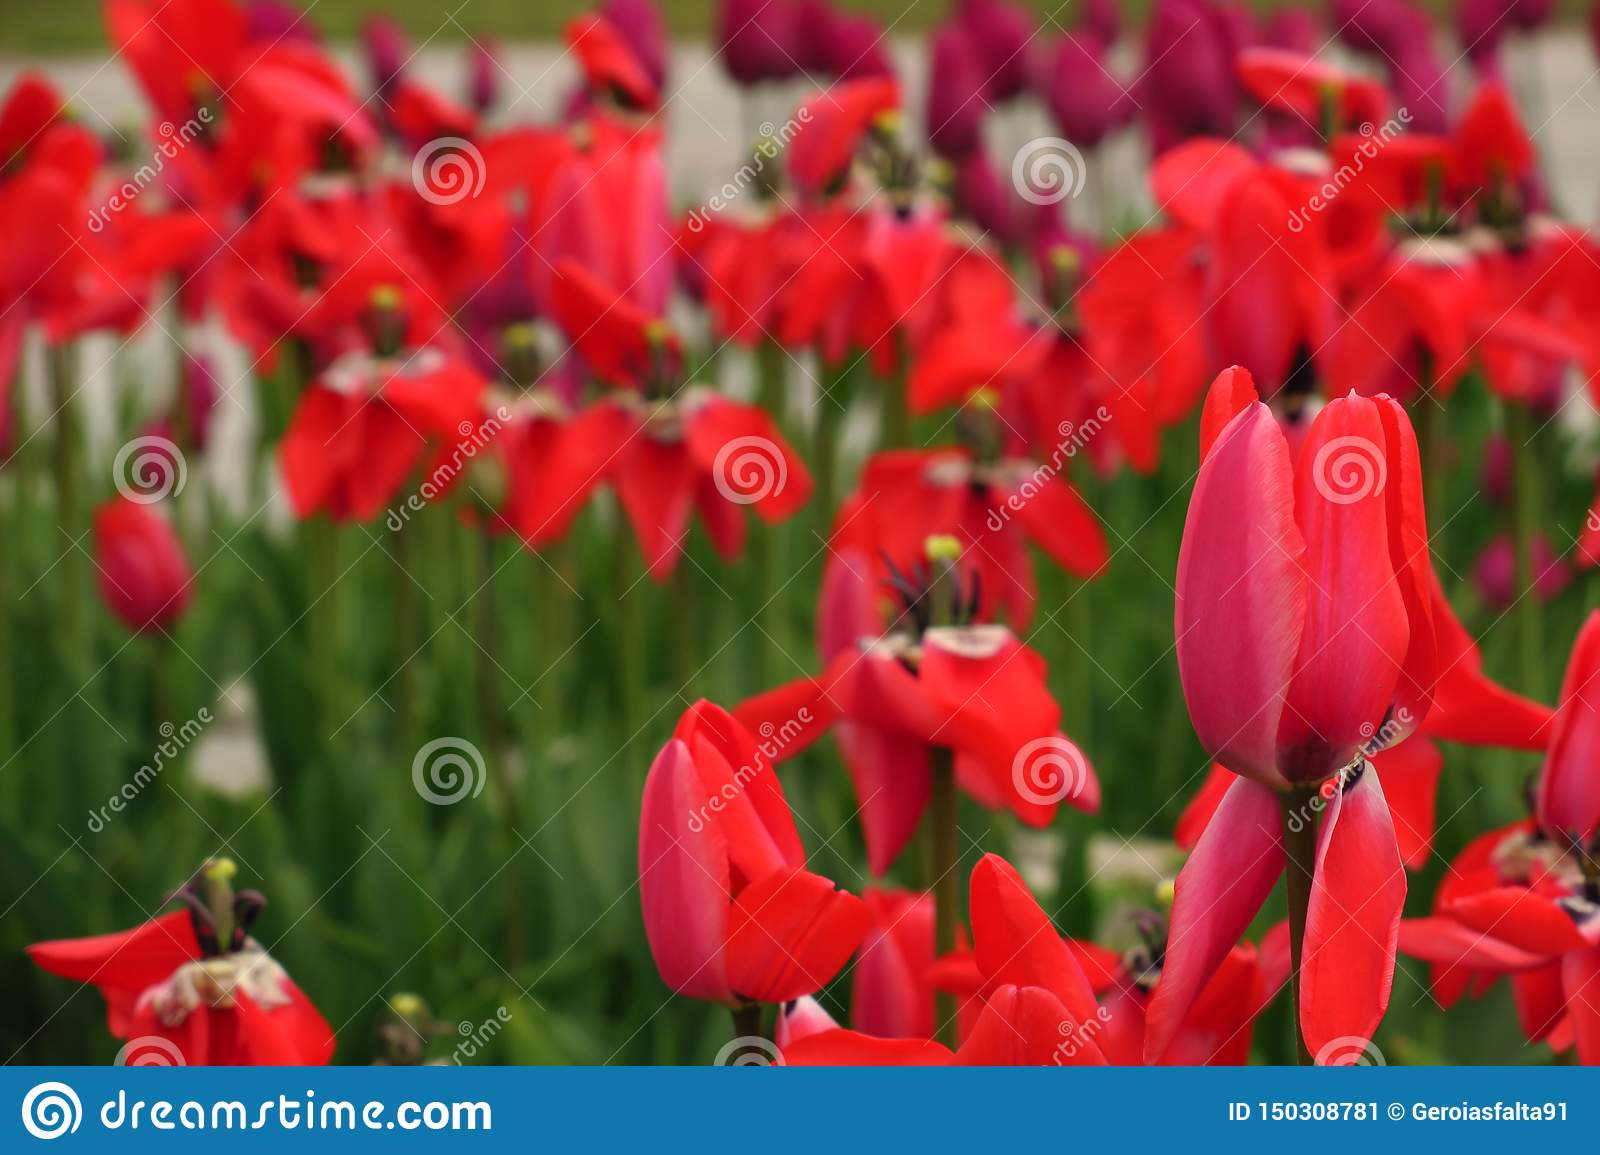 Red tulips field in Netherlands. Red tulip fields. Red tulips view. Red tulip fields in Holland